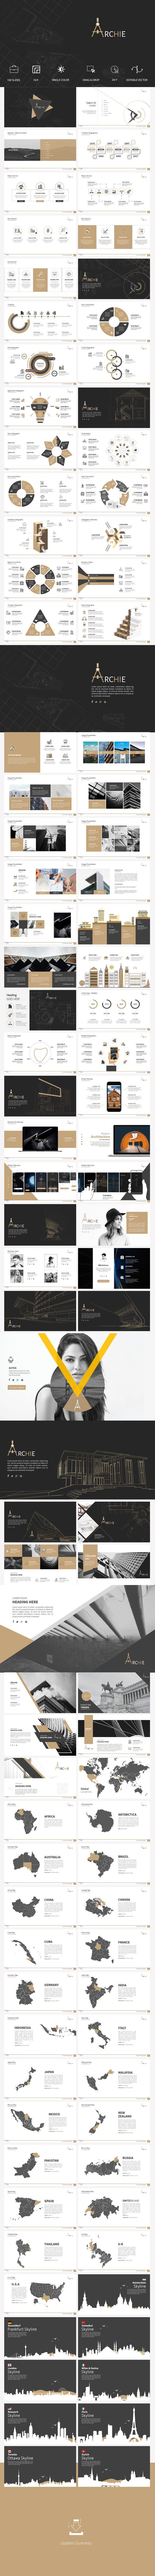 Archie animated presentation template business powerpoint archie animated presentation template business powerpoint templates architecture toneelgroepblik Images